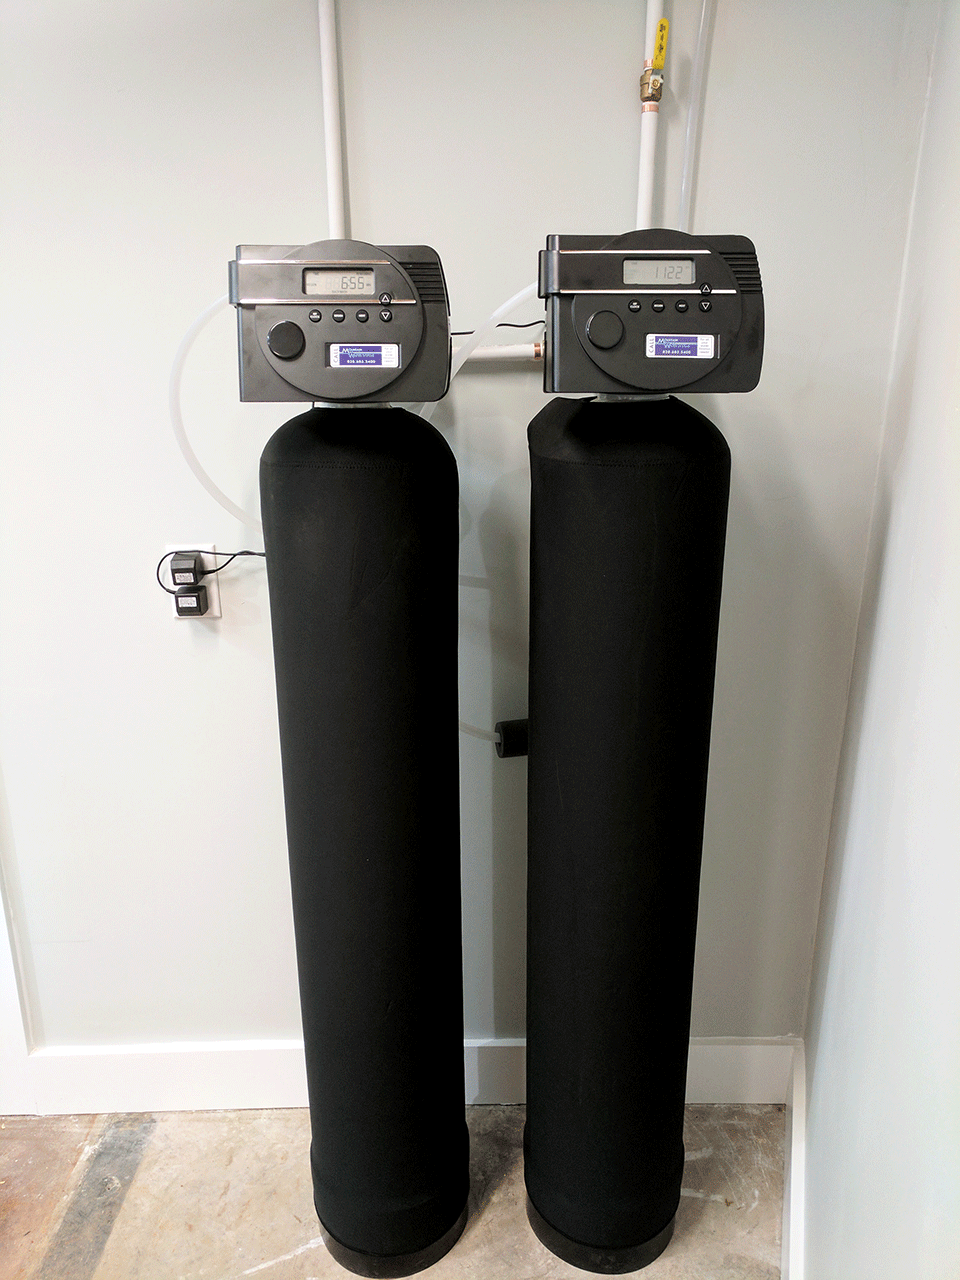 New customer in Black Mountain NC solves the metal tasting water problem with our filtration product! This install consist of our Platinum Series iron filter for the iron water issues they were having, and also neutralizer for low PH reading (acidic water ) issues. Platinum Series is the top of the line water filtration system that we offer and we also believe is the best in the industry. All components are American Made which supports American jobs and workers. The Platinum Series is fully programmable and has an extensive and reliable battery backup system. The new customers are euphoric with the water after the install. They were a referral from an existing long-time customer of Mountain Water Systems.